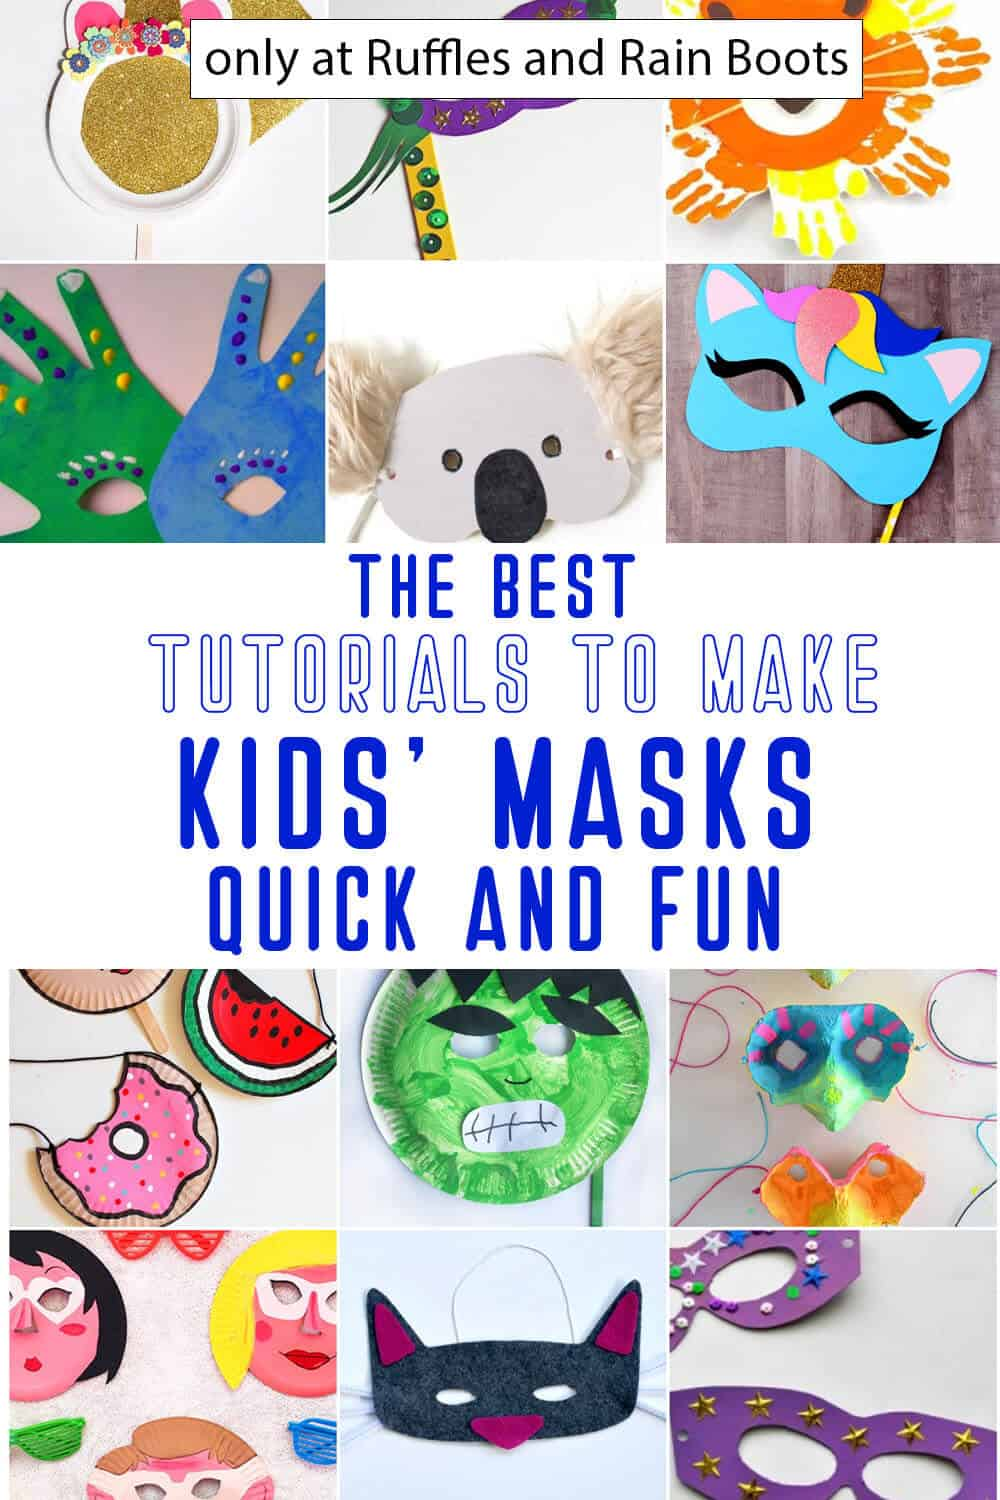 photo collage of kids diy masks with text which reads the best tutorials to make kids' masks quick and fun